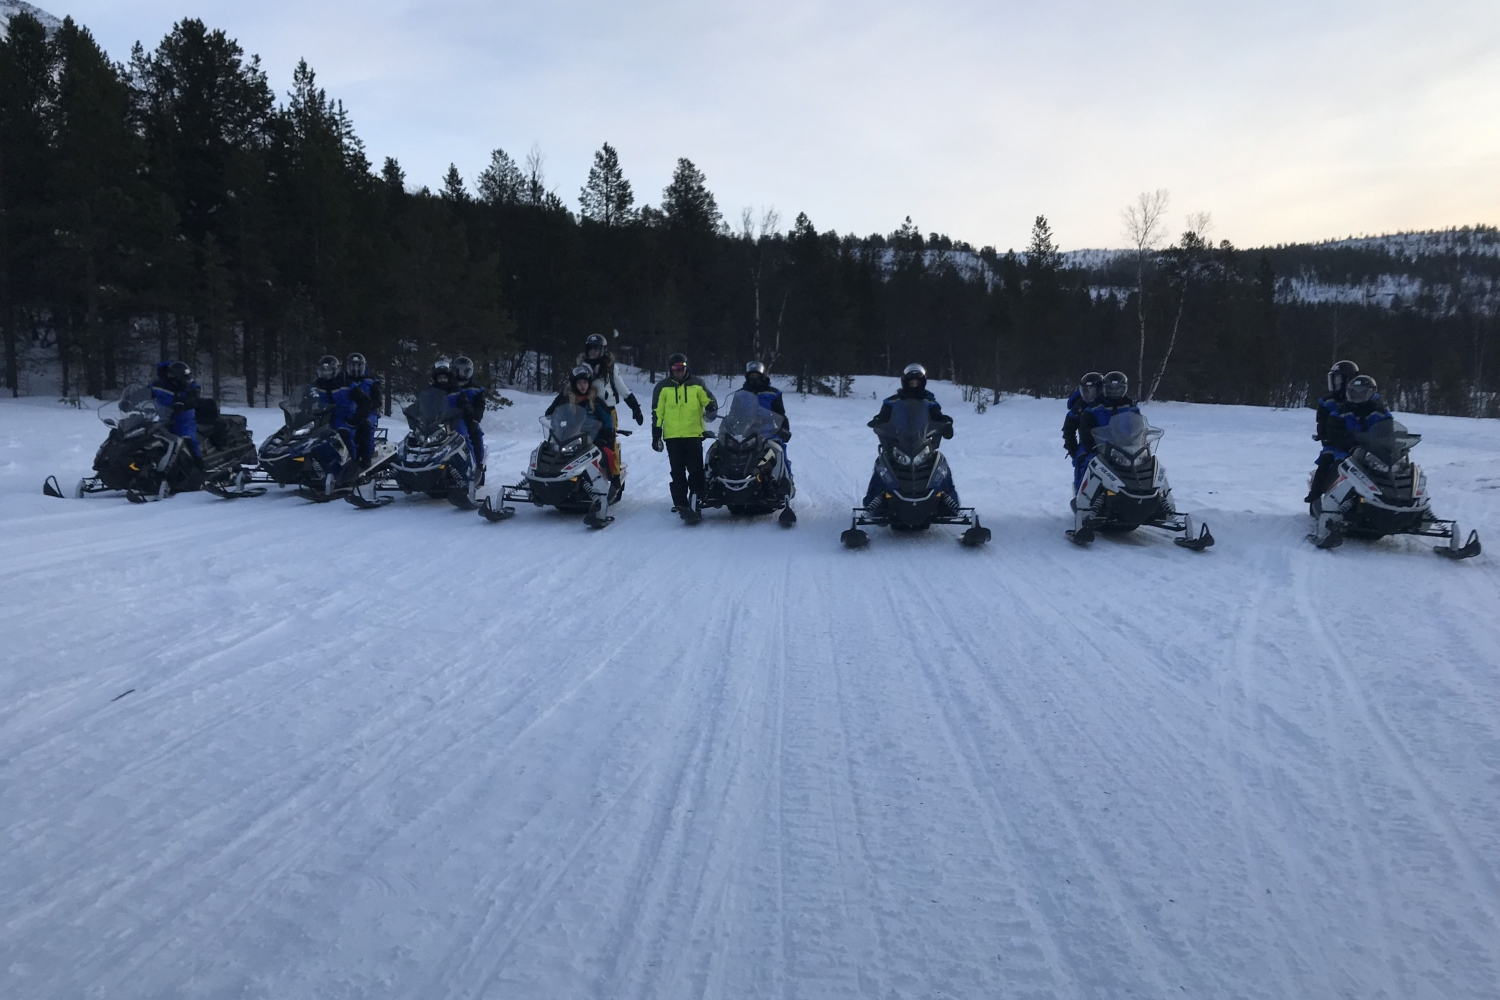 snowmobiles standing in a line